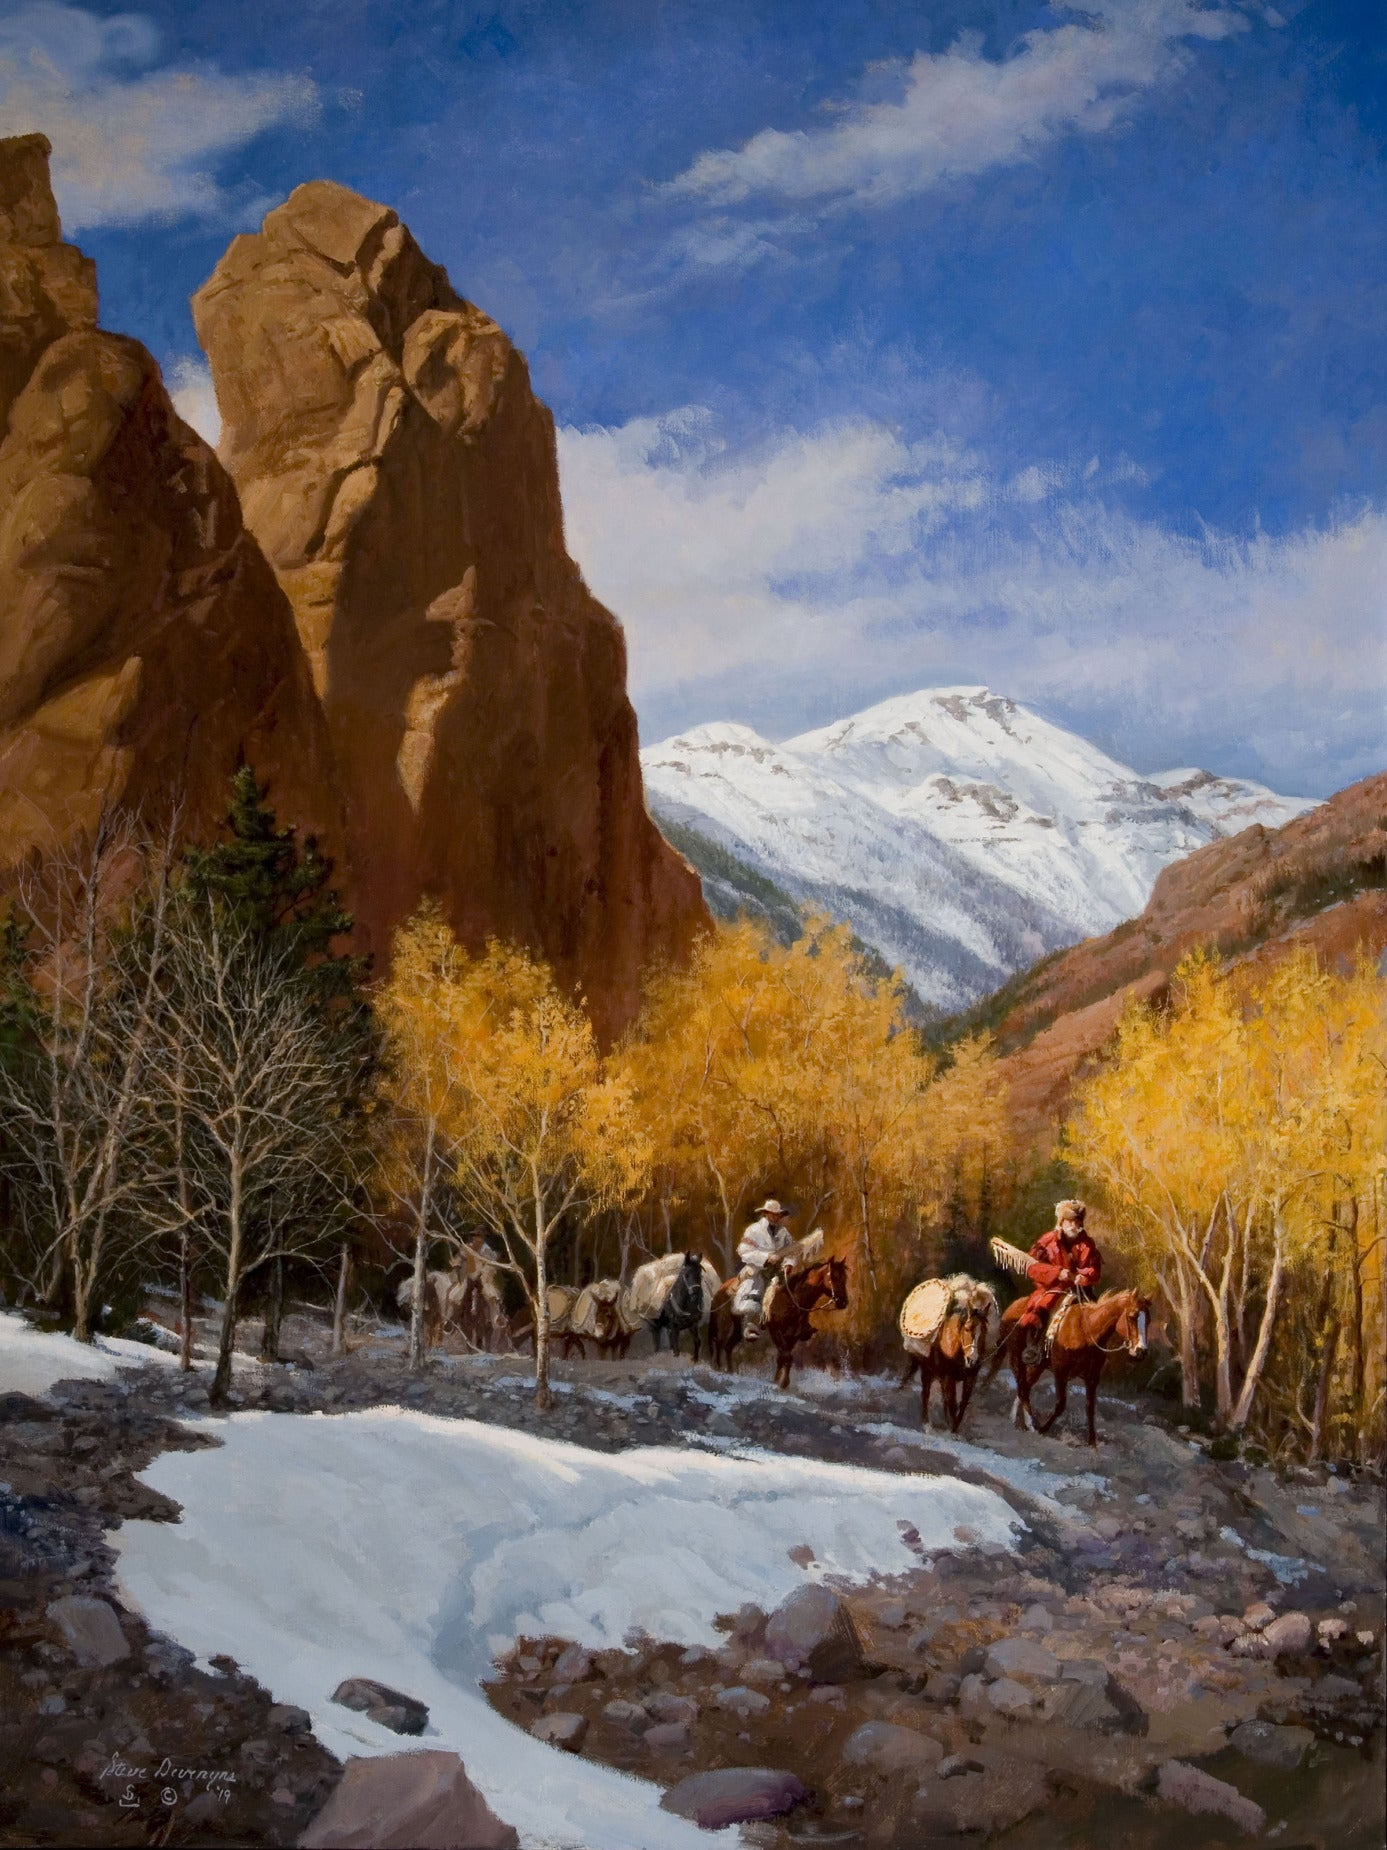 Deer Creek Trappers is a Oil Painting on Linen by the famous Western and Cowboy Artist Steve Devenyns. Steve has been featured in the Buffalo Bill Art Show, Prix de West Art Show, Bradford Brinton Museum. Original Paintings of Ranching, Wildlife and Cowboy art. True depictions of the American Cowboy modern and past.